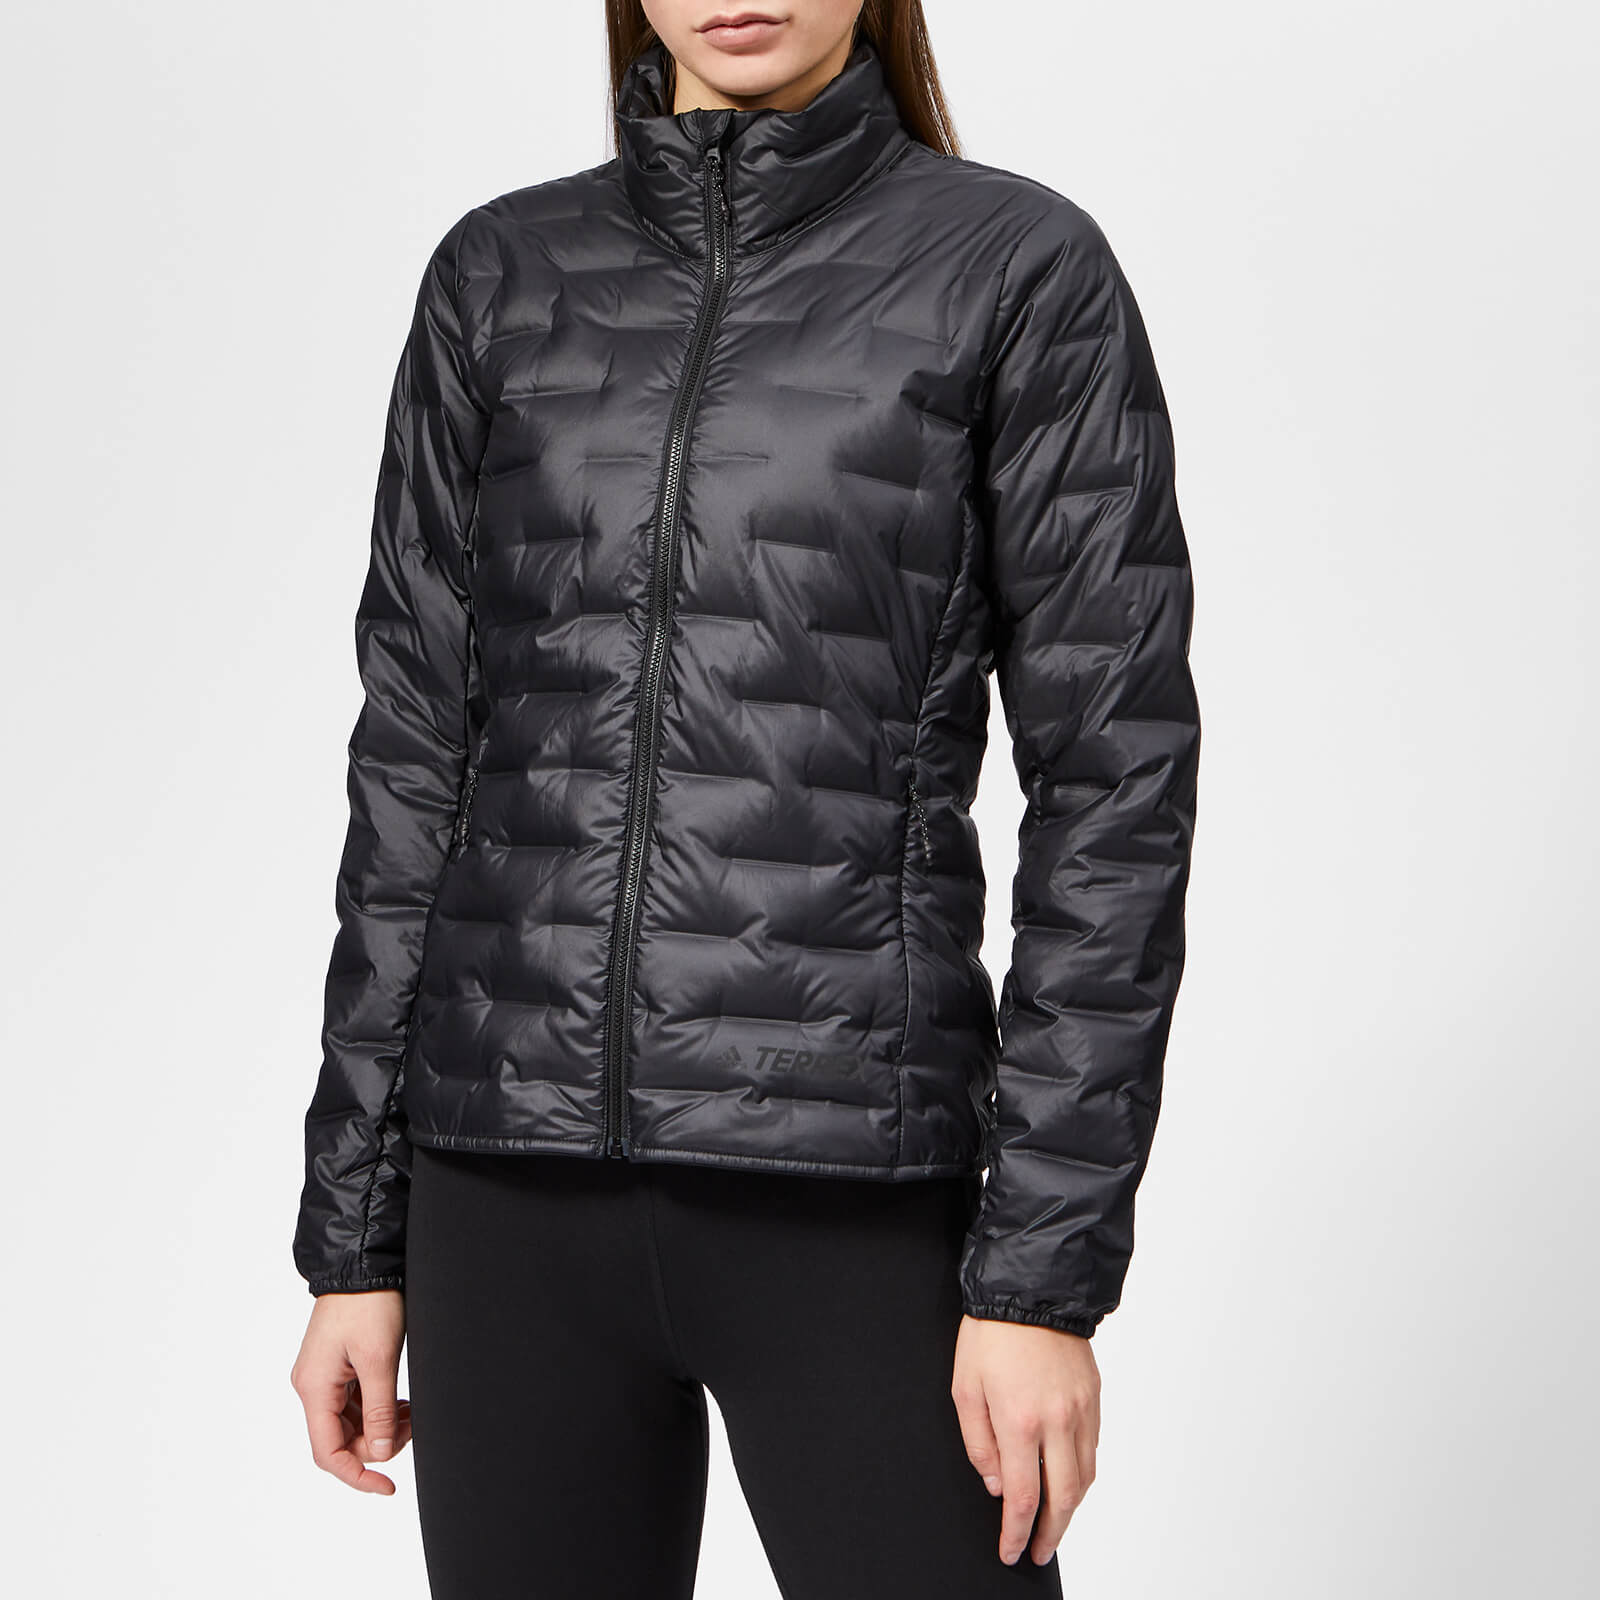 Adidas Light Black Down Women's Jacket IE2HW9DY